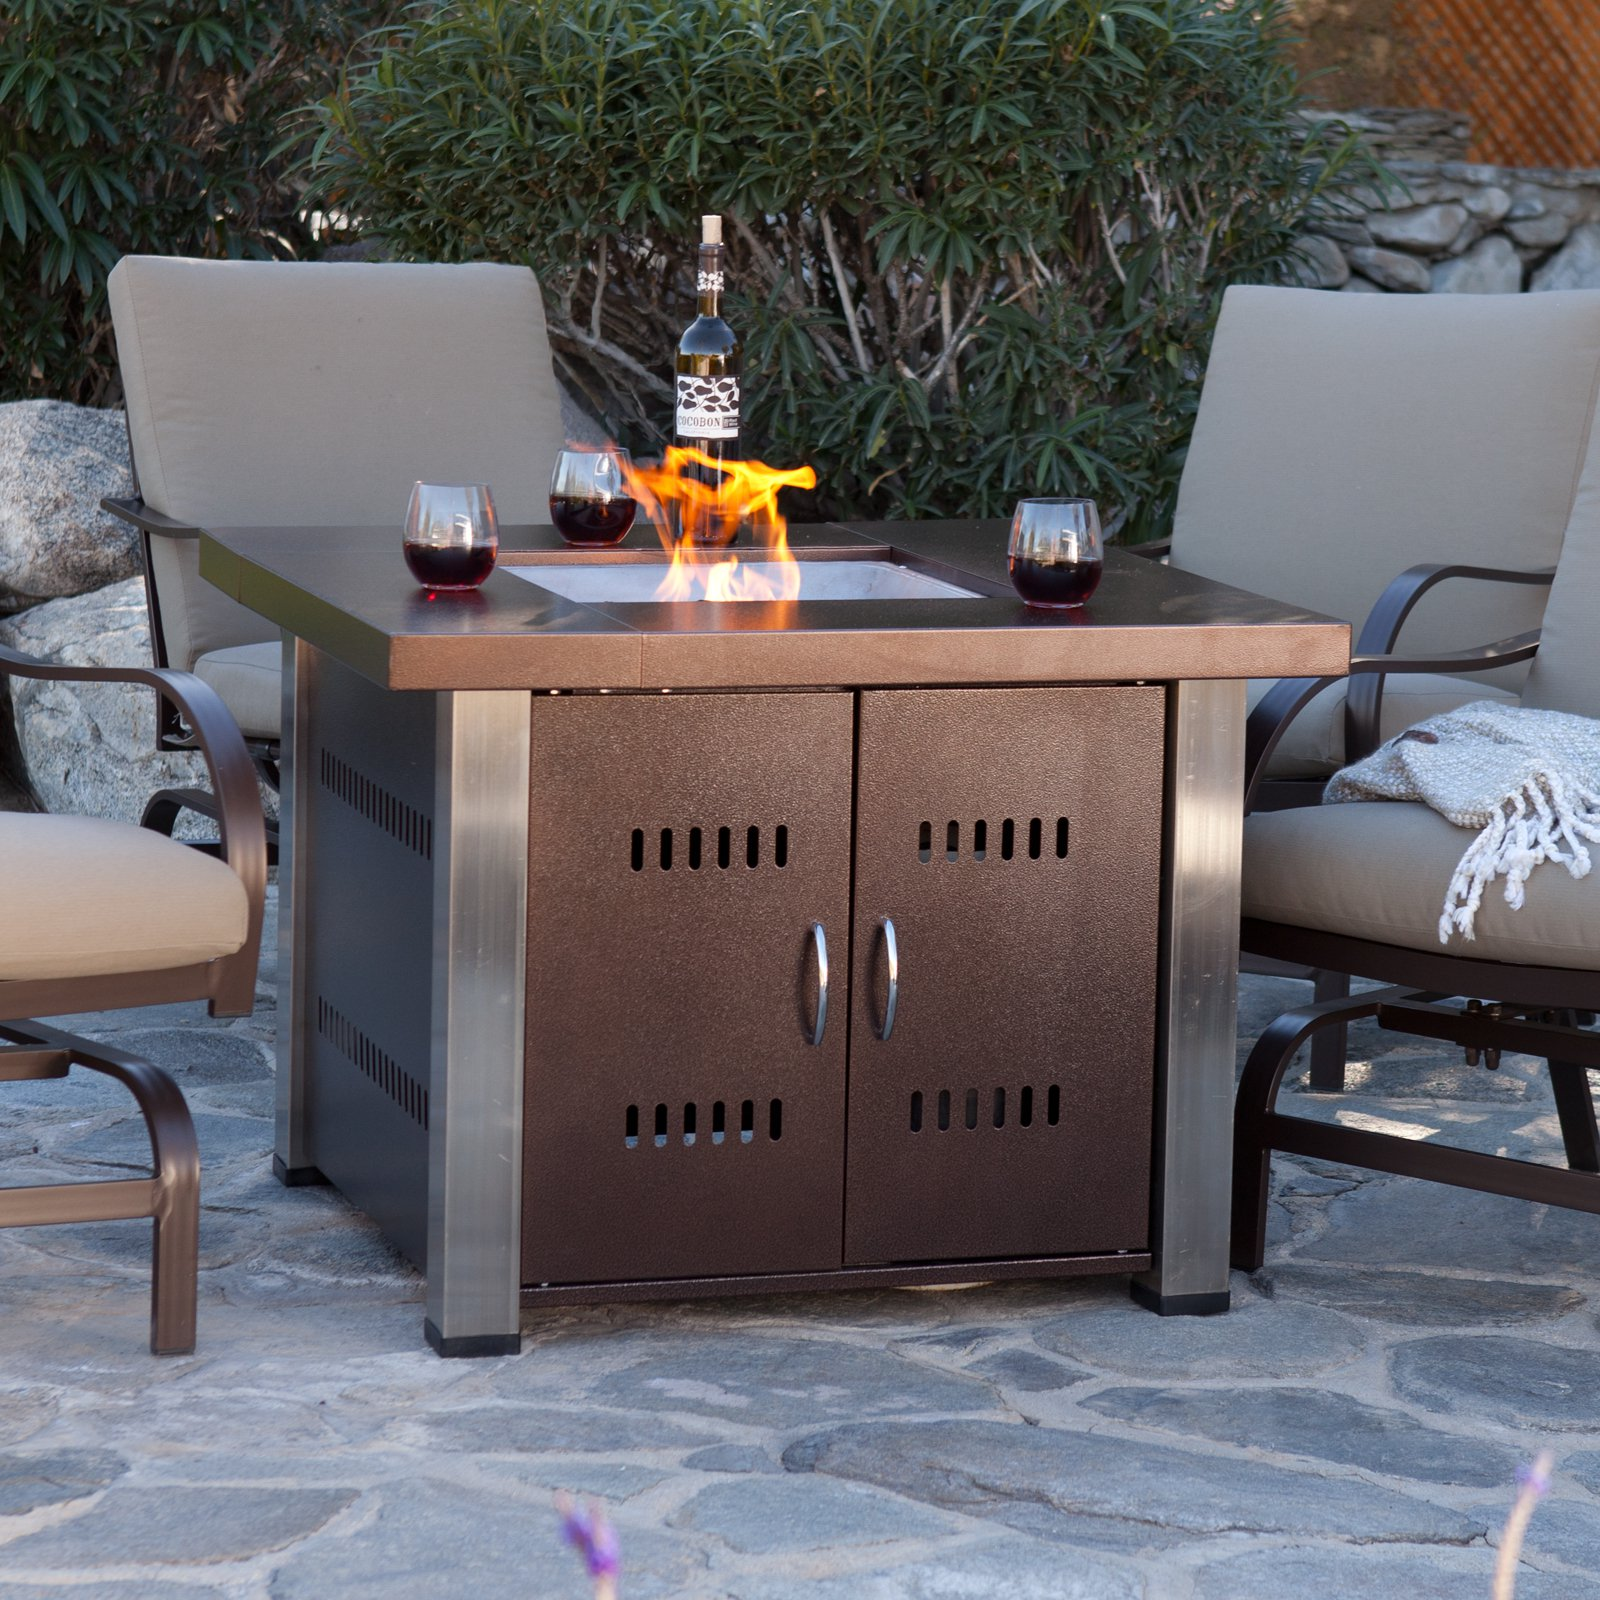 az heater propane antique bronze and stainless steel fire pit walmartcom - Propane Patio Heater